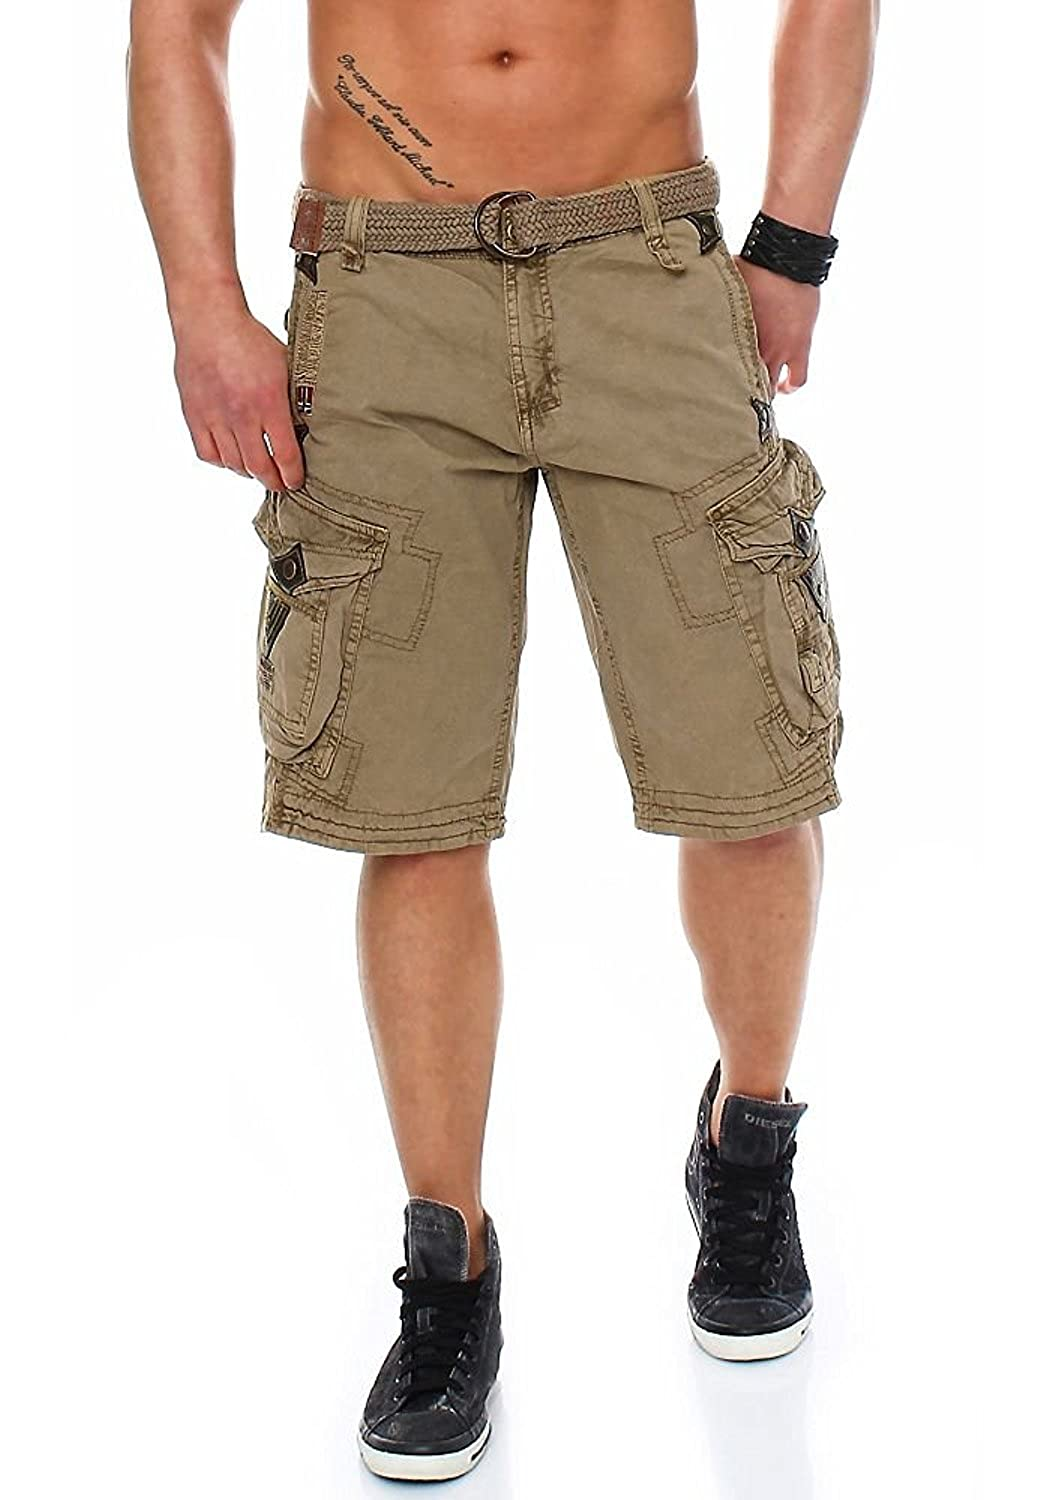 Geographical Norway - Pantalón Corto - para Hombre Beige Large